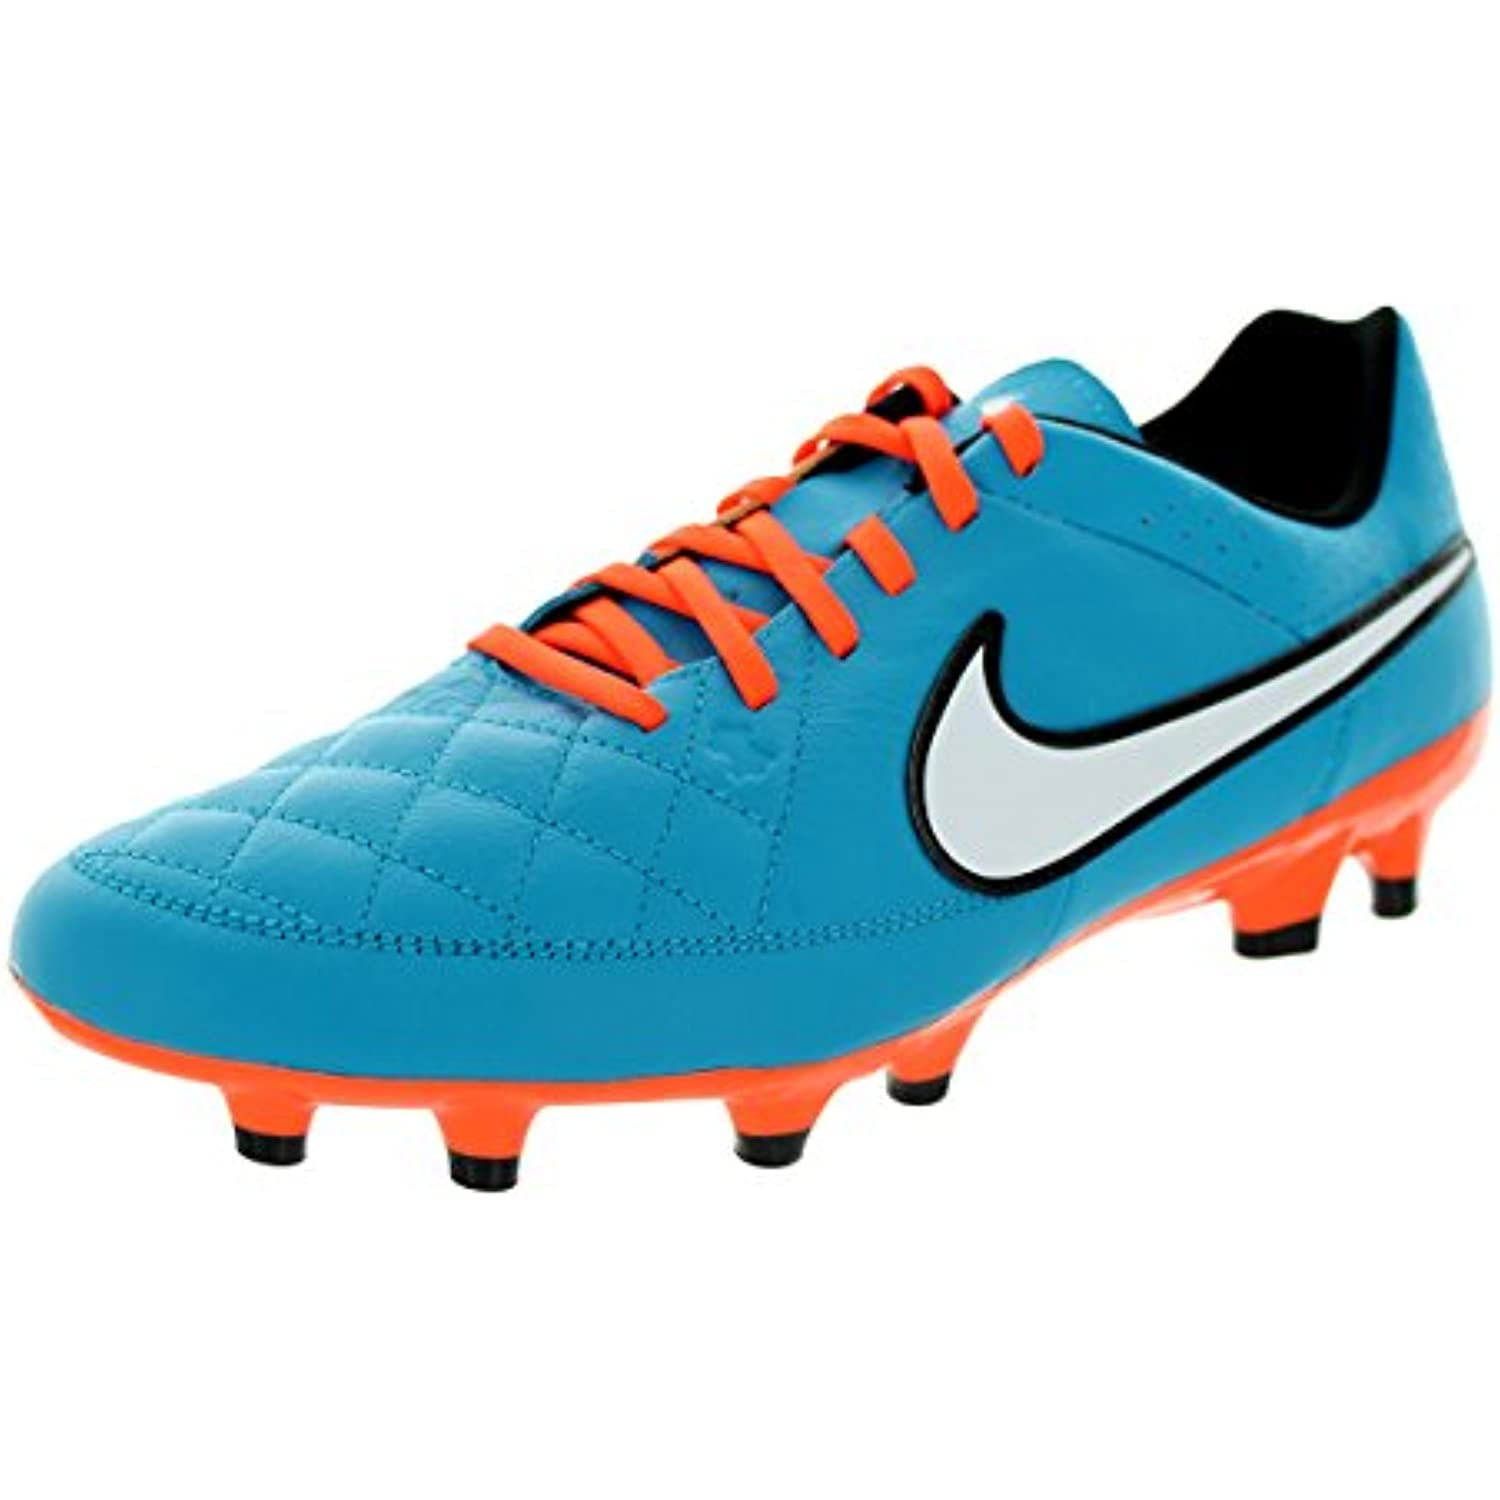 Nike Tiempo Genio Leather FG Homme Chaussures de Football - - - B004XX3UDO - 508594